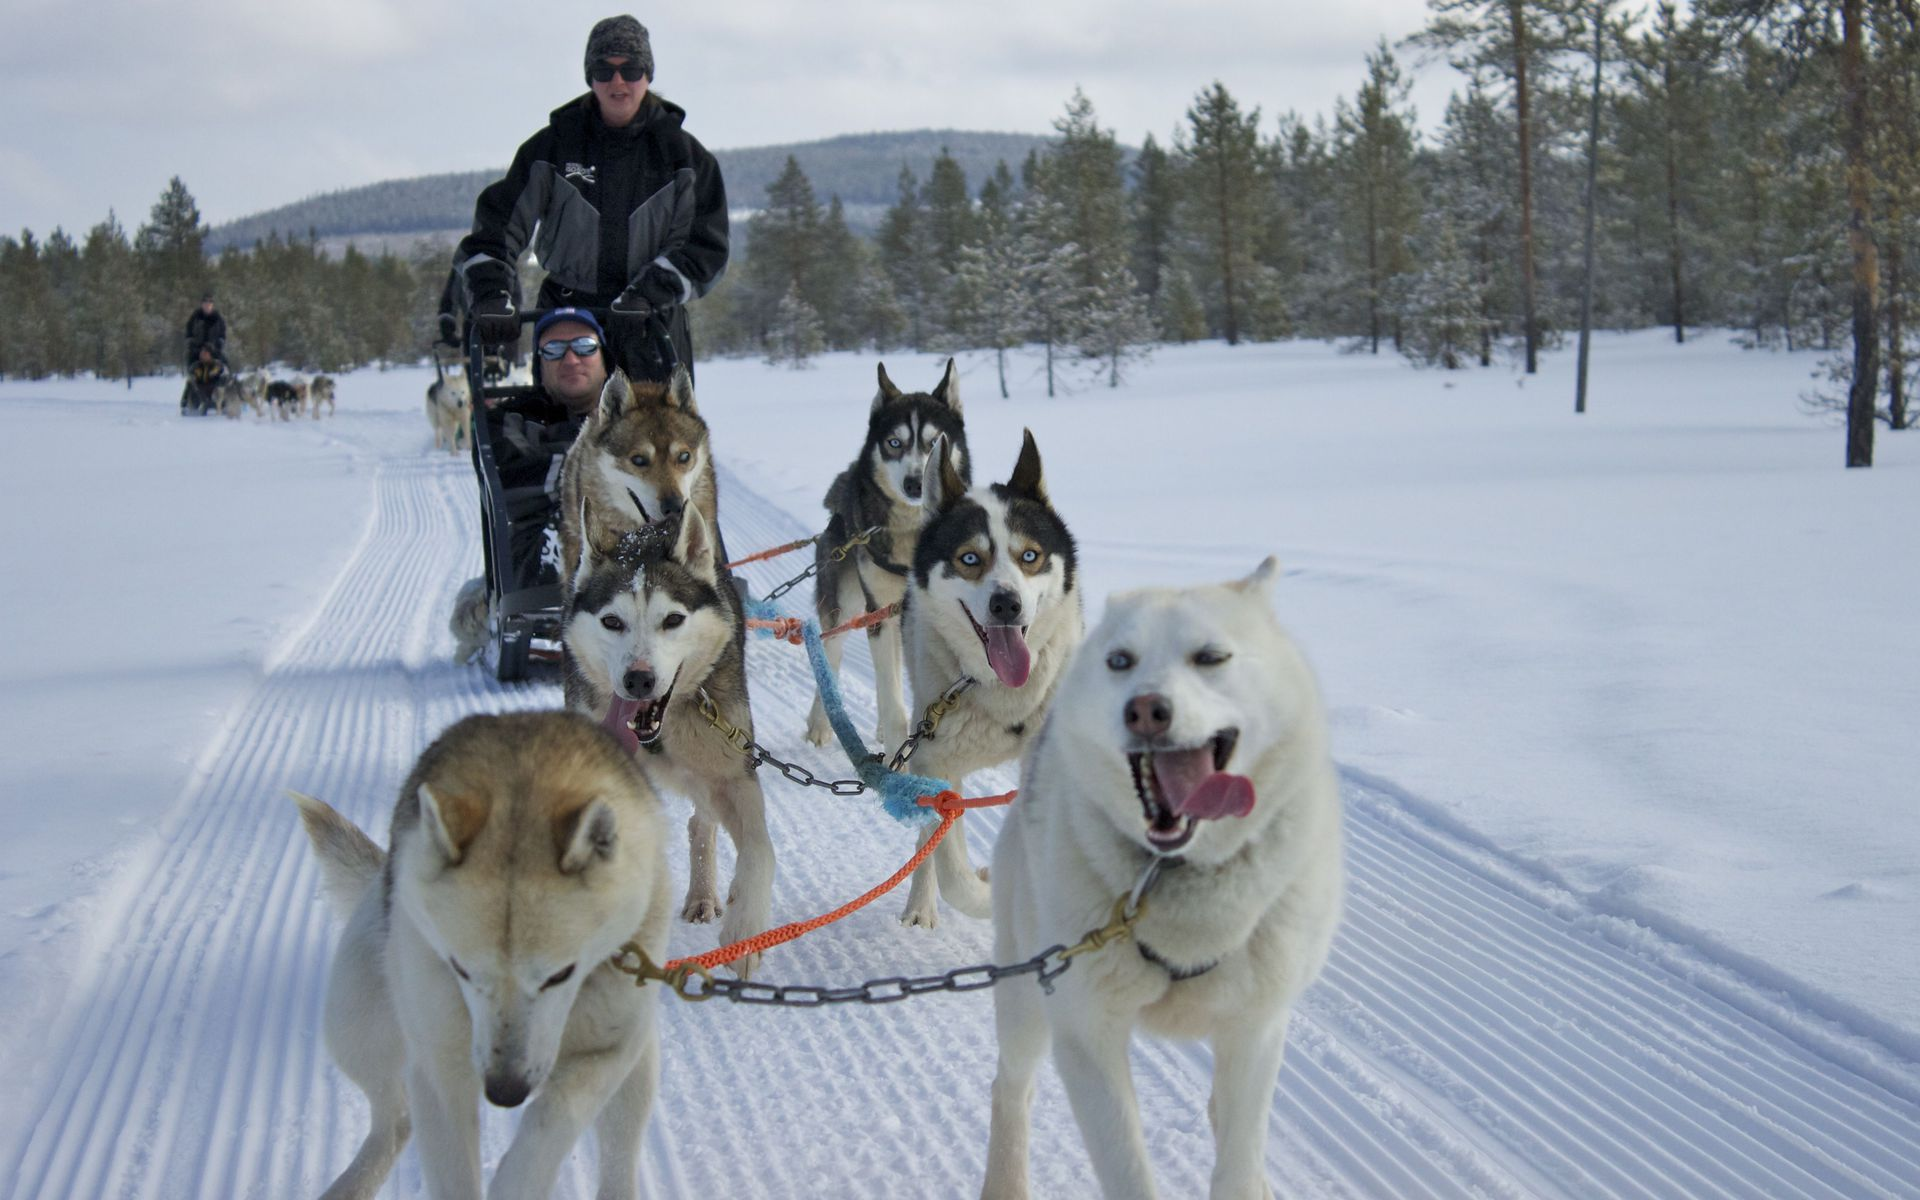 winter activites in Iso-Syöte include dog sledding